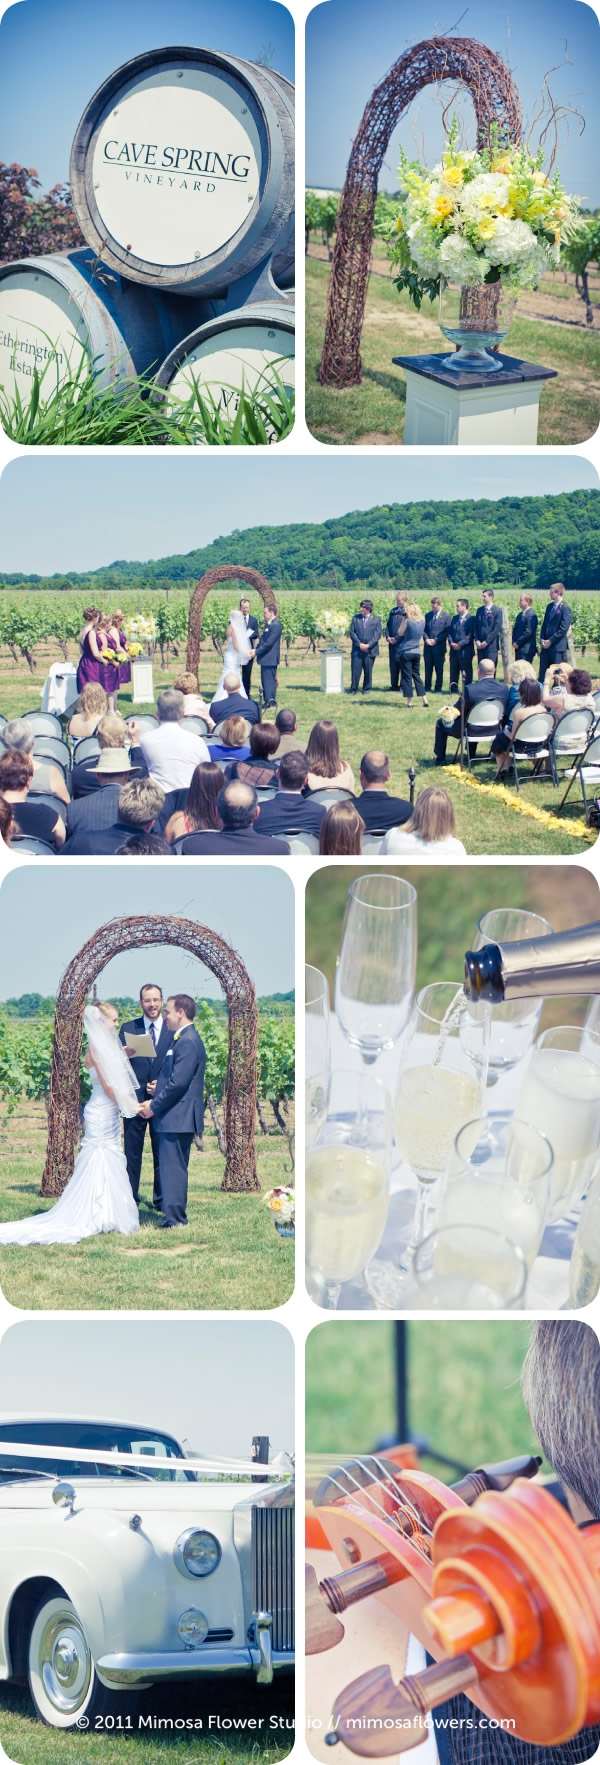 Cave Spring Vineyard Wedding / Inn on the Twenty 2